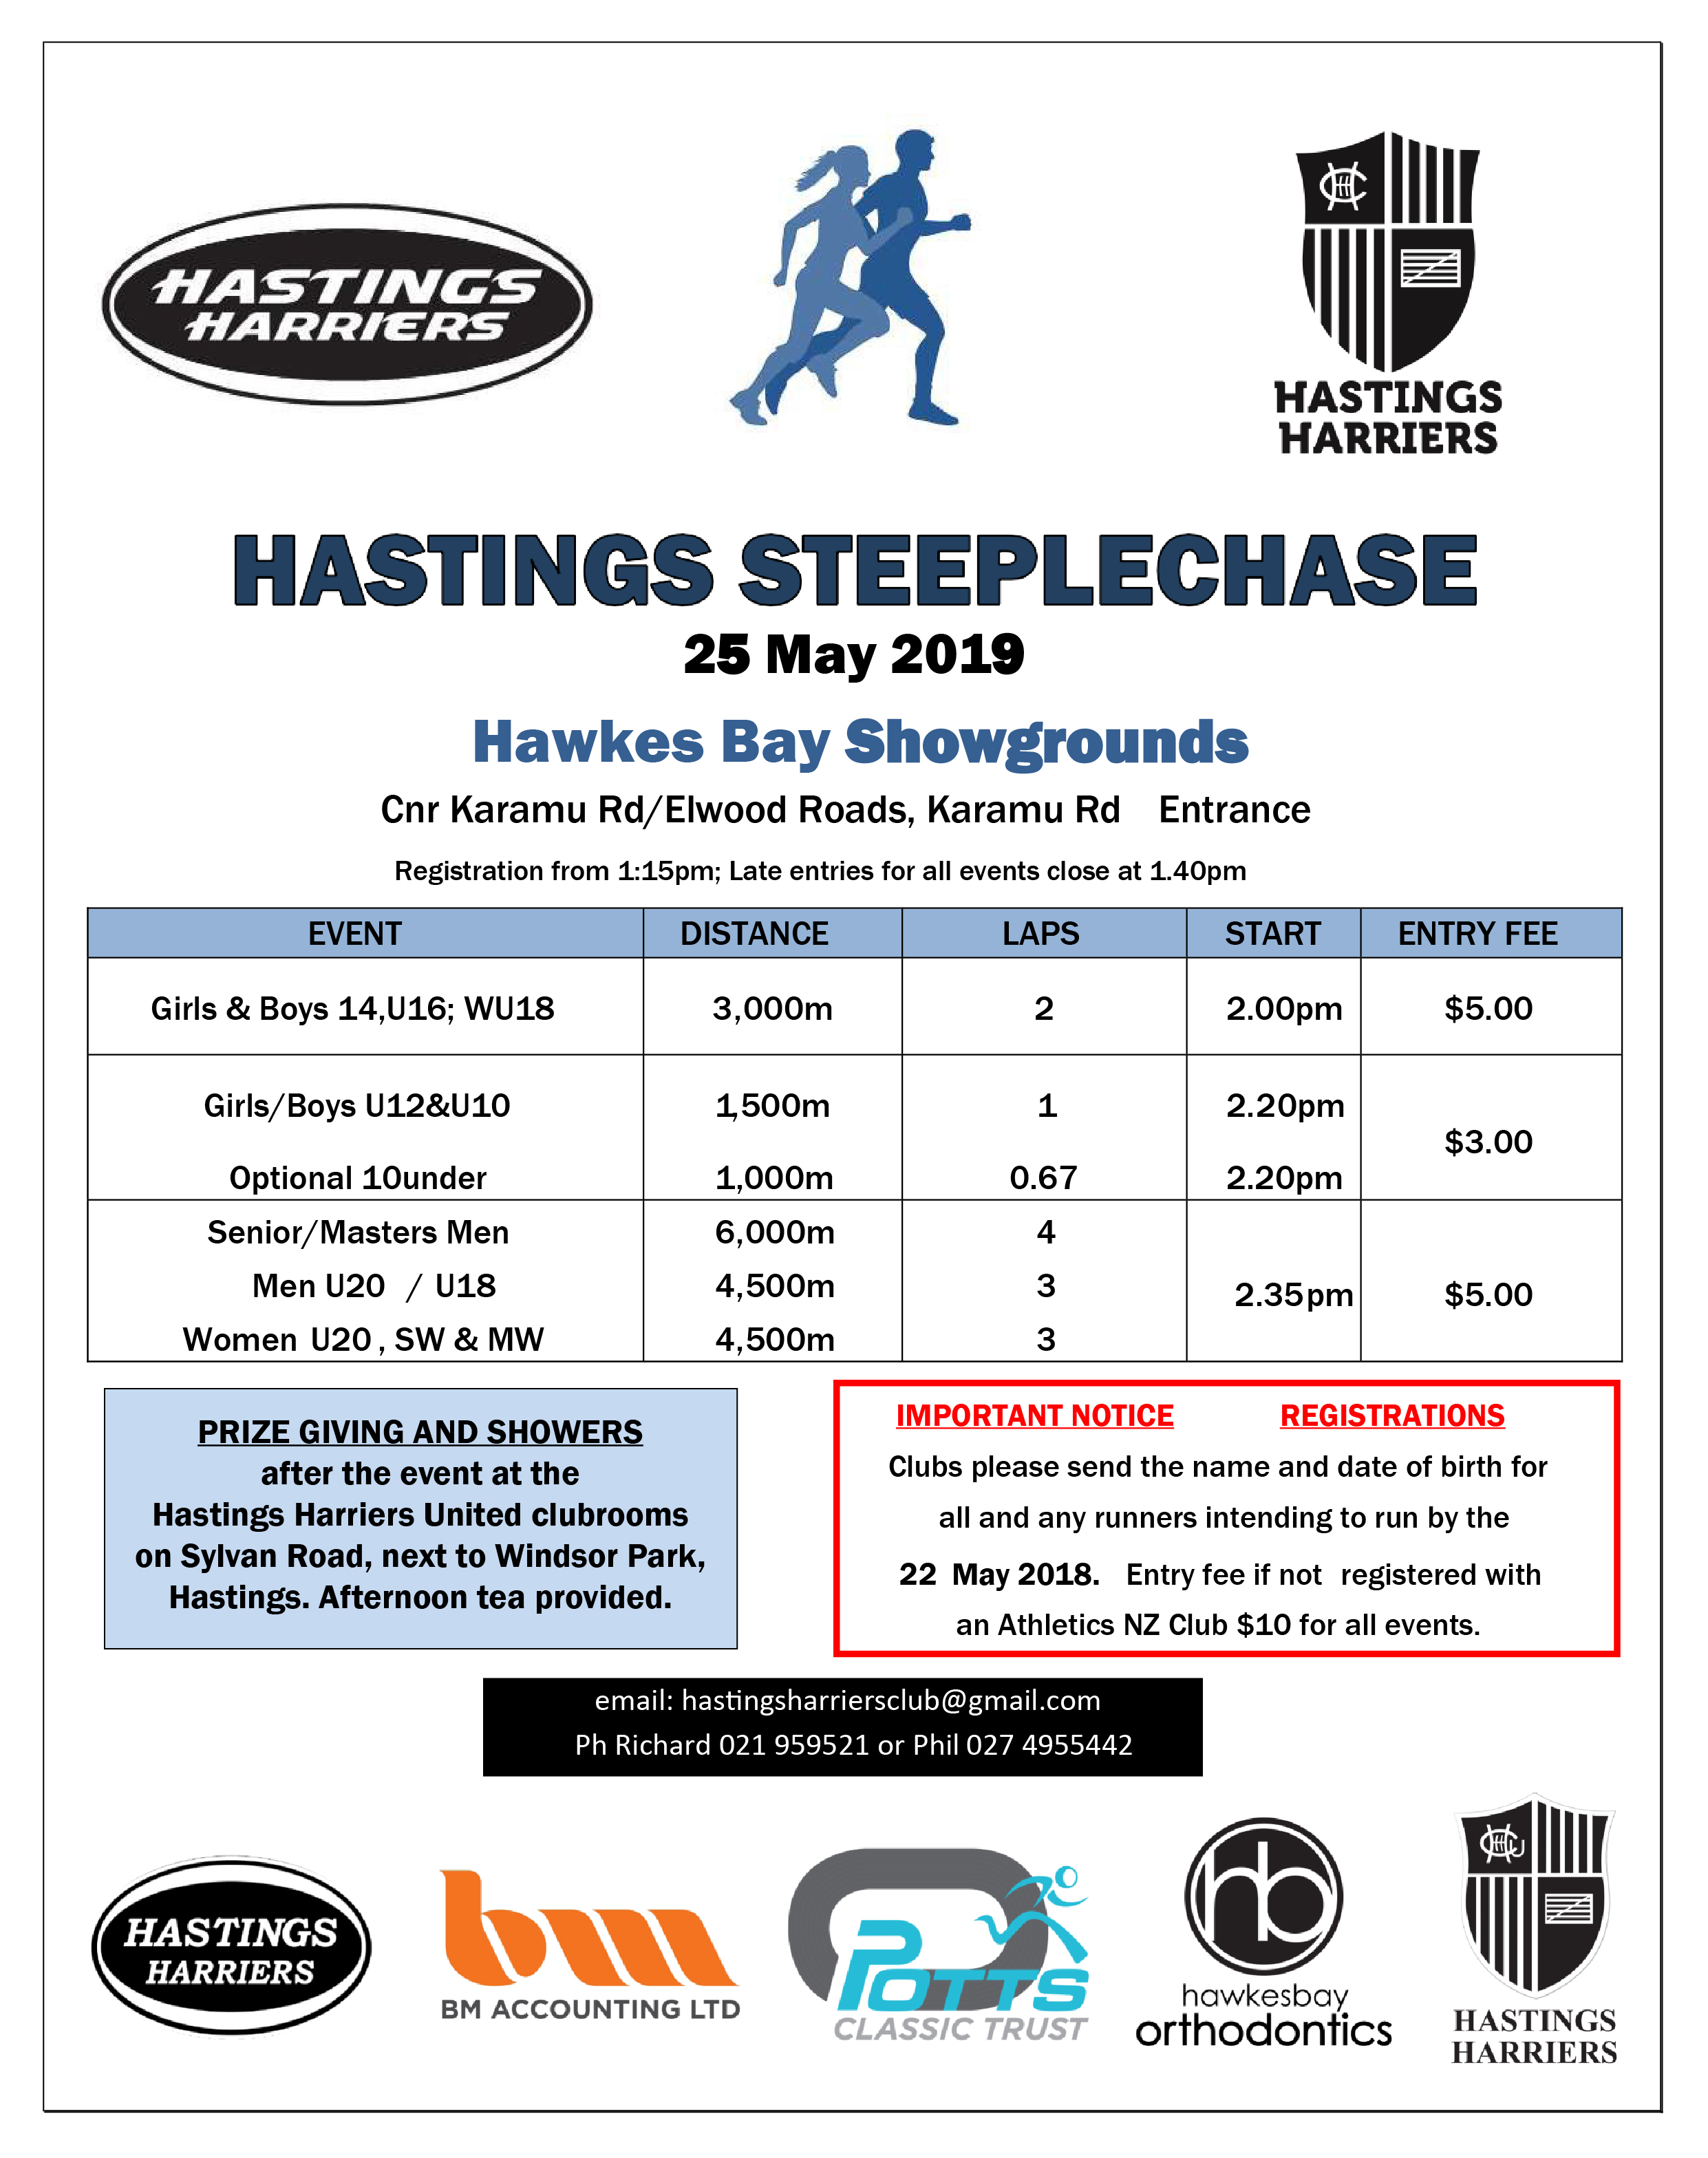 Hastings Steeplechase Flyer 2019 Final 01